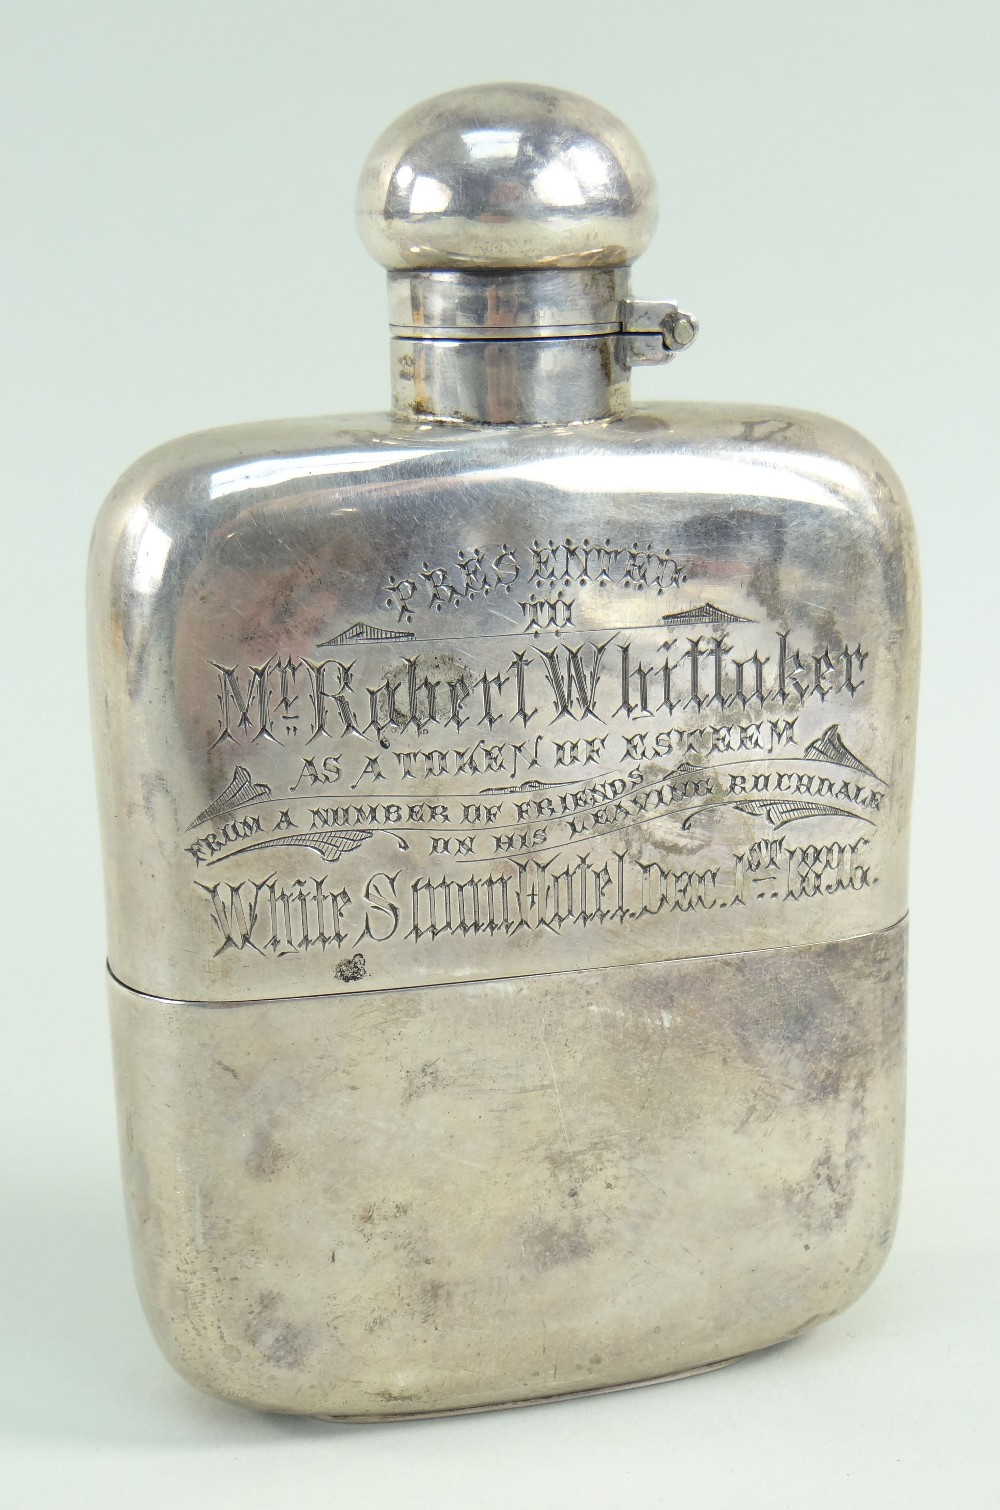 VICTORIAN SILVER HIP FLASK with presentation engraving 'Presented to Mr Robert Whittaker as a